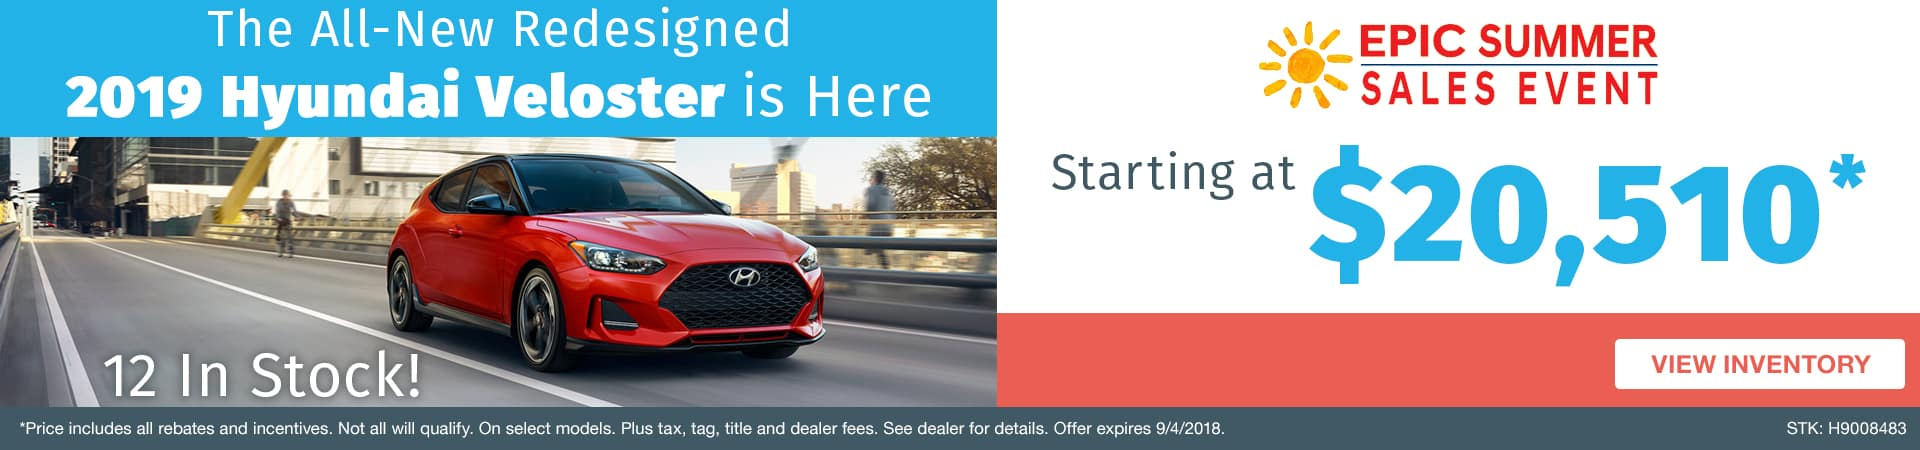 Drive home the all-new 2019 Hyundai Veloster starting at $20,510 in Murfreesboro TN